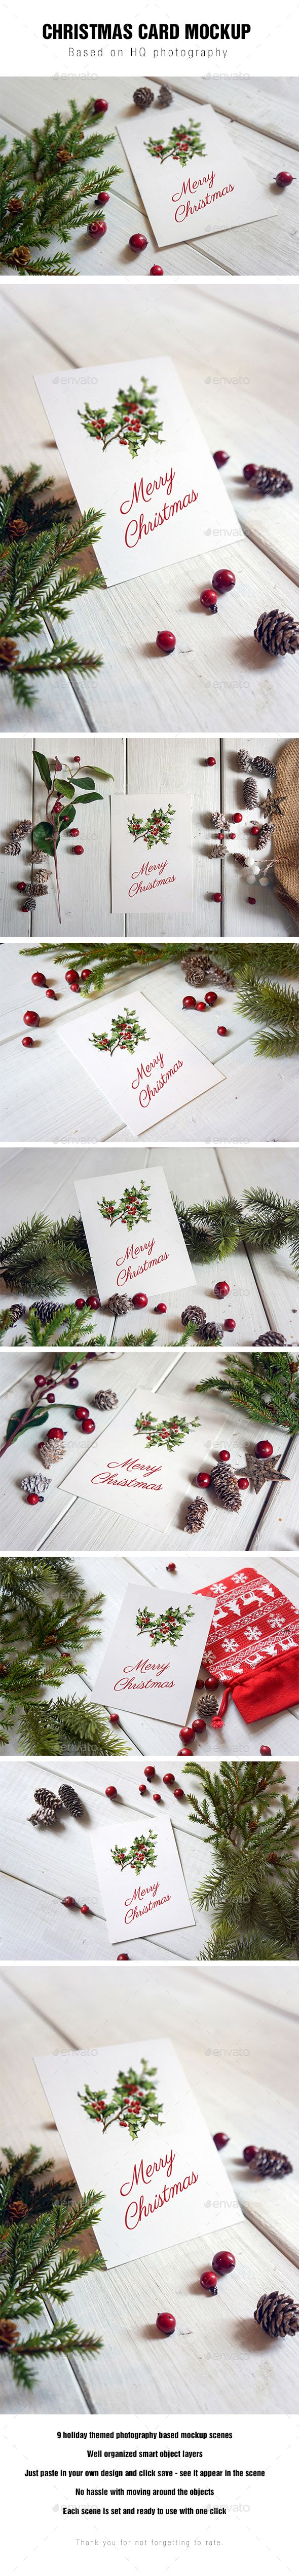 Christmas Styled Photography & Mockup - White&Gold versionWhite and ...